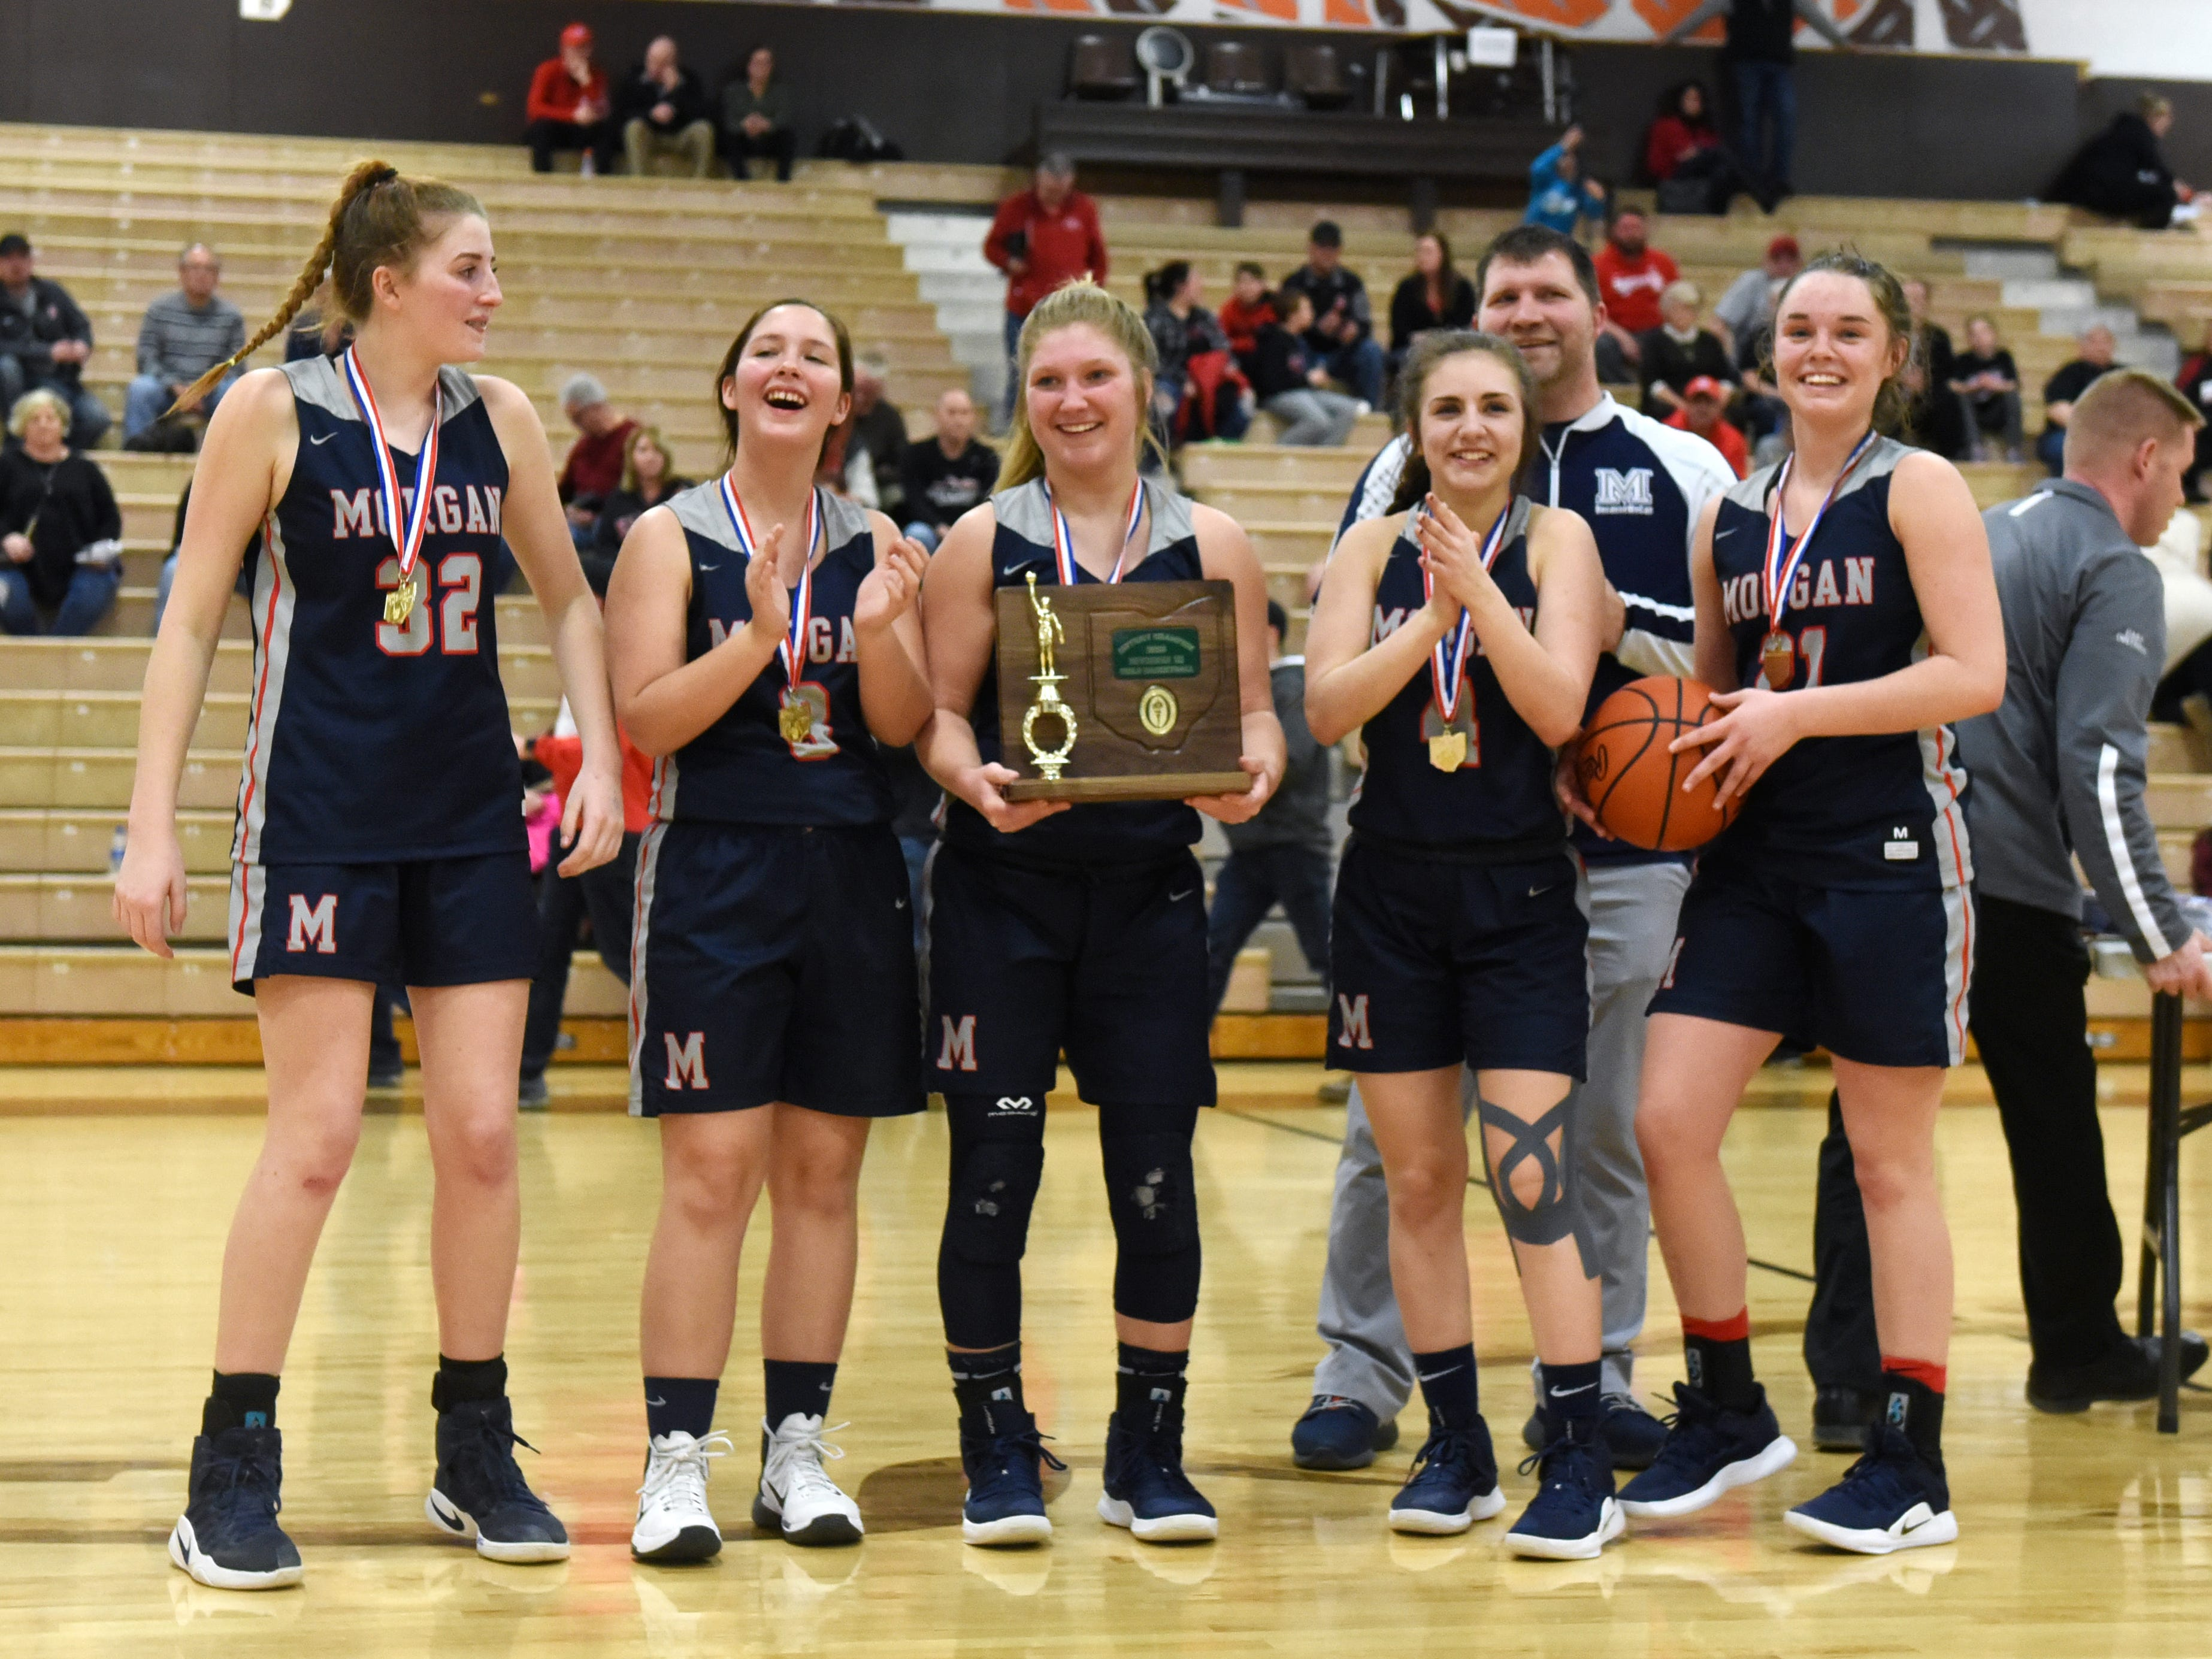 Morgan's seniors stand with the district championship trophy it earned following a Division III district final win against Bellaire on Saturday at Meadowbrook.